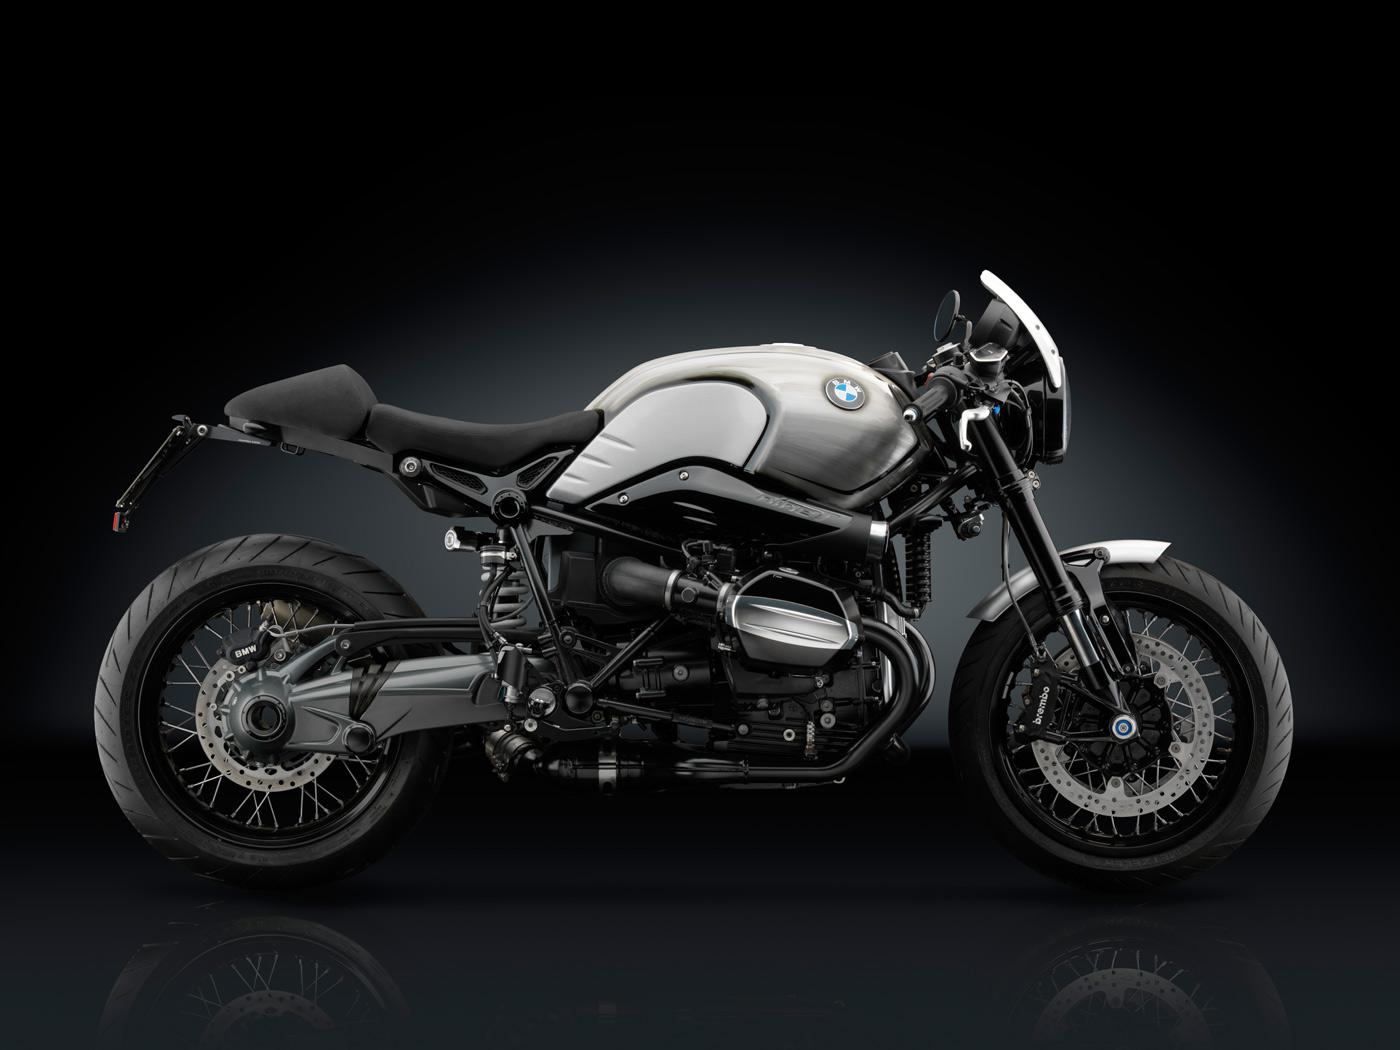 rizoma bmw r ninet zubeh r motorrad fotos motorrad bilder. Black Bedroom Furniture Sets. Home Design Ideas